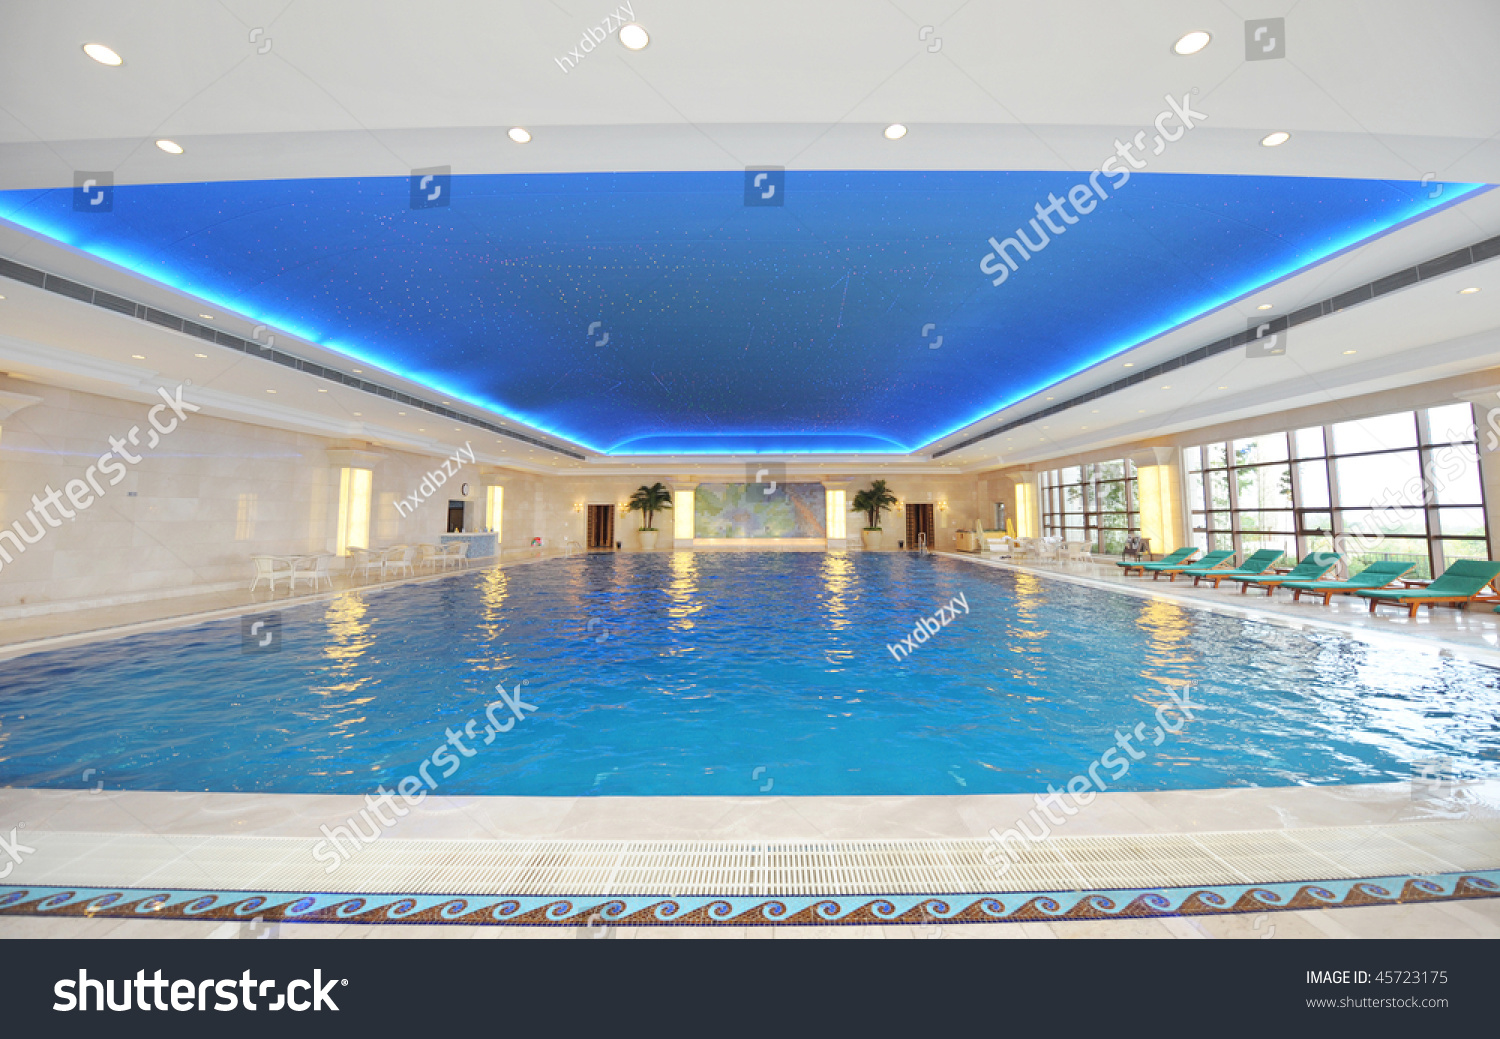 Luxury Indoor Swimming Pool With Beautiful Clean Blue Water Stock Photo 45723175 Shutterstock